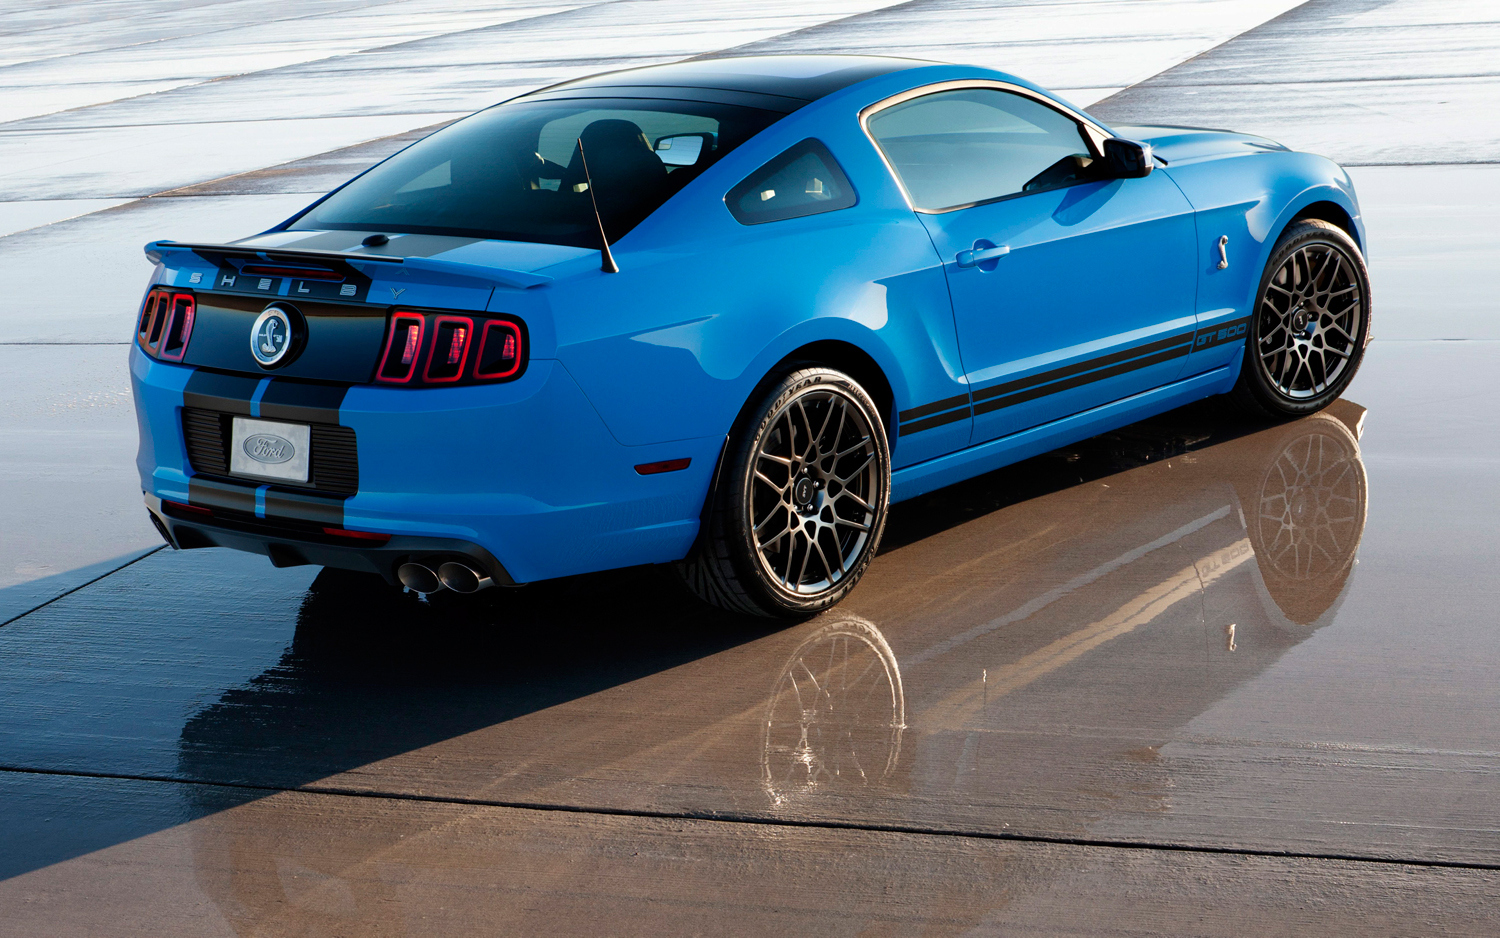 2013 Ford Shelby Gt500 #10